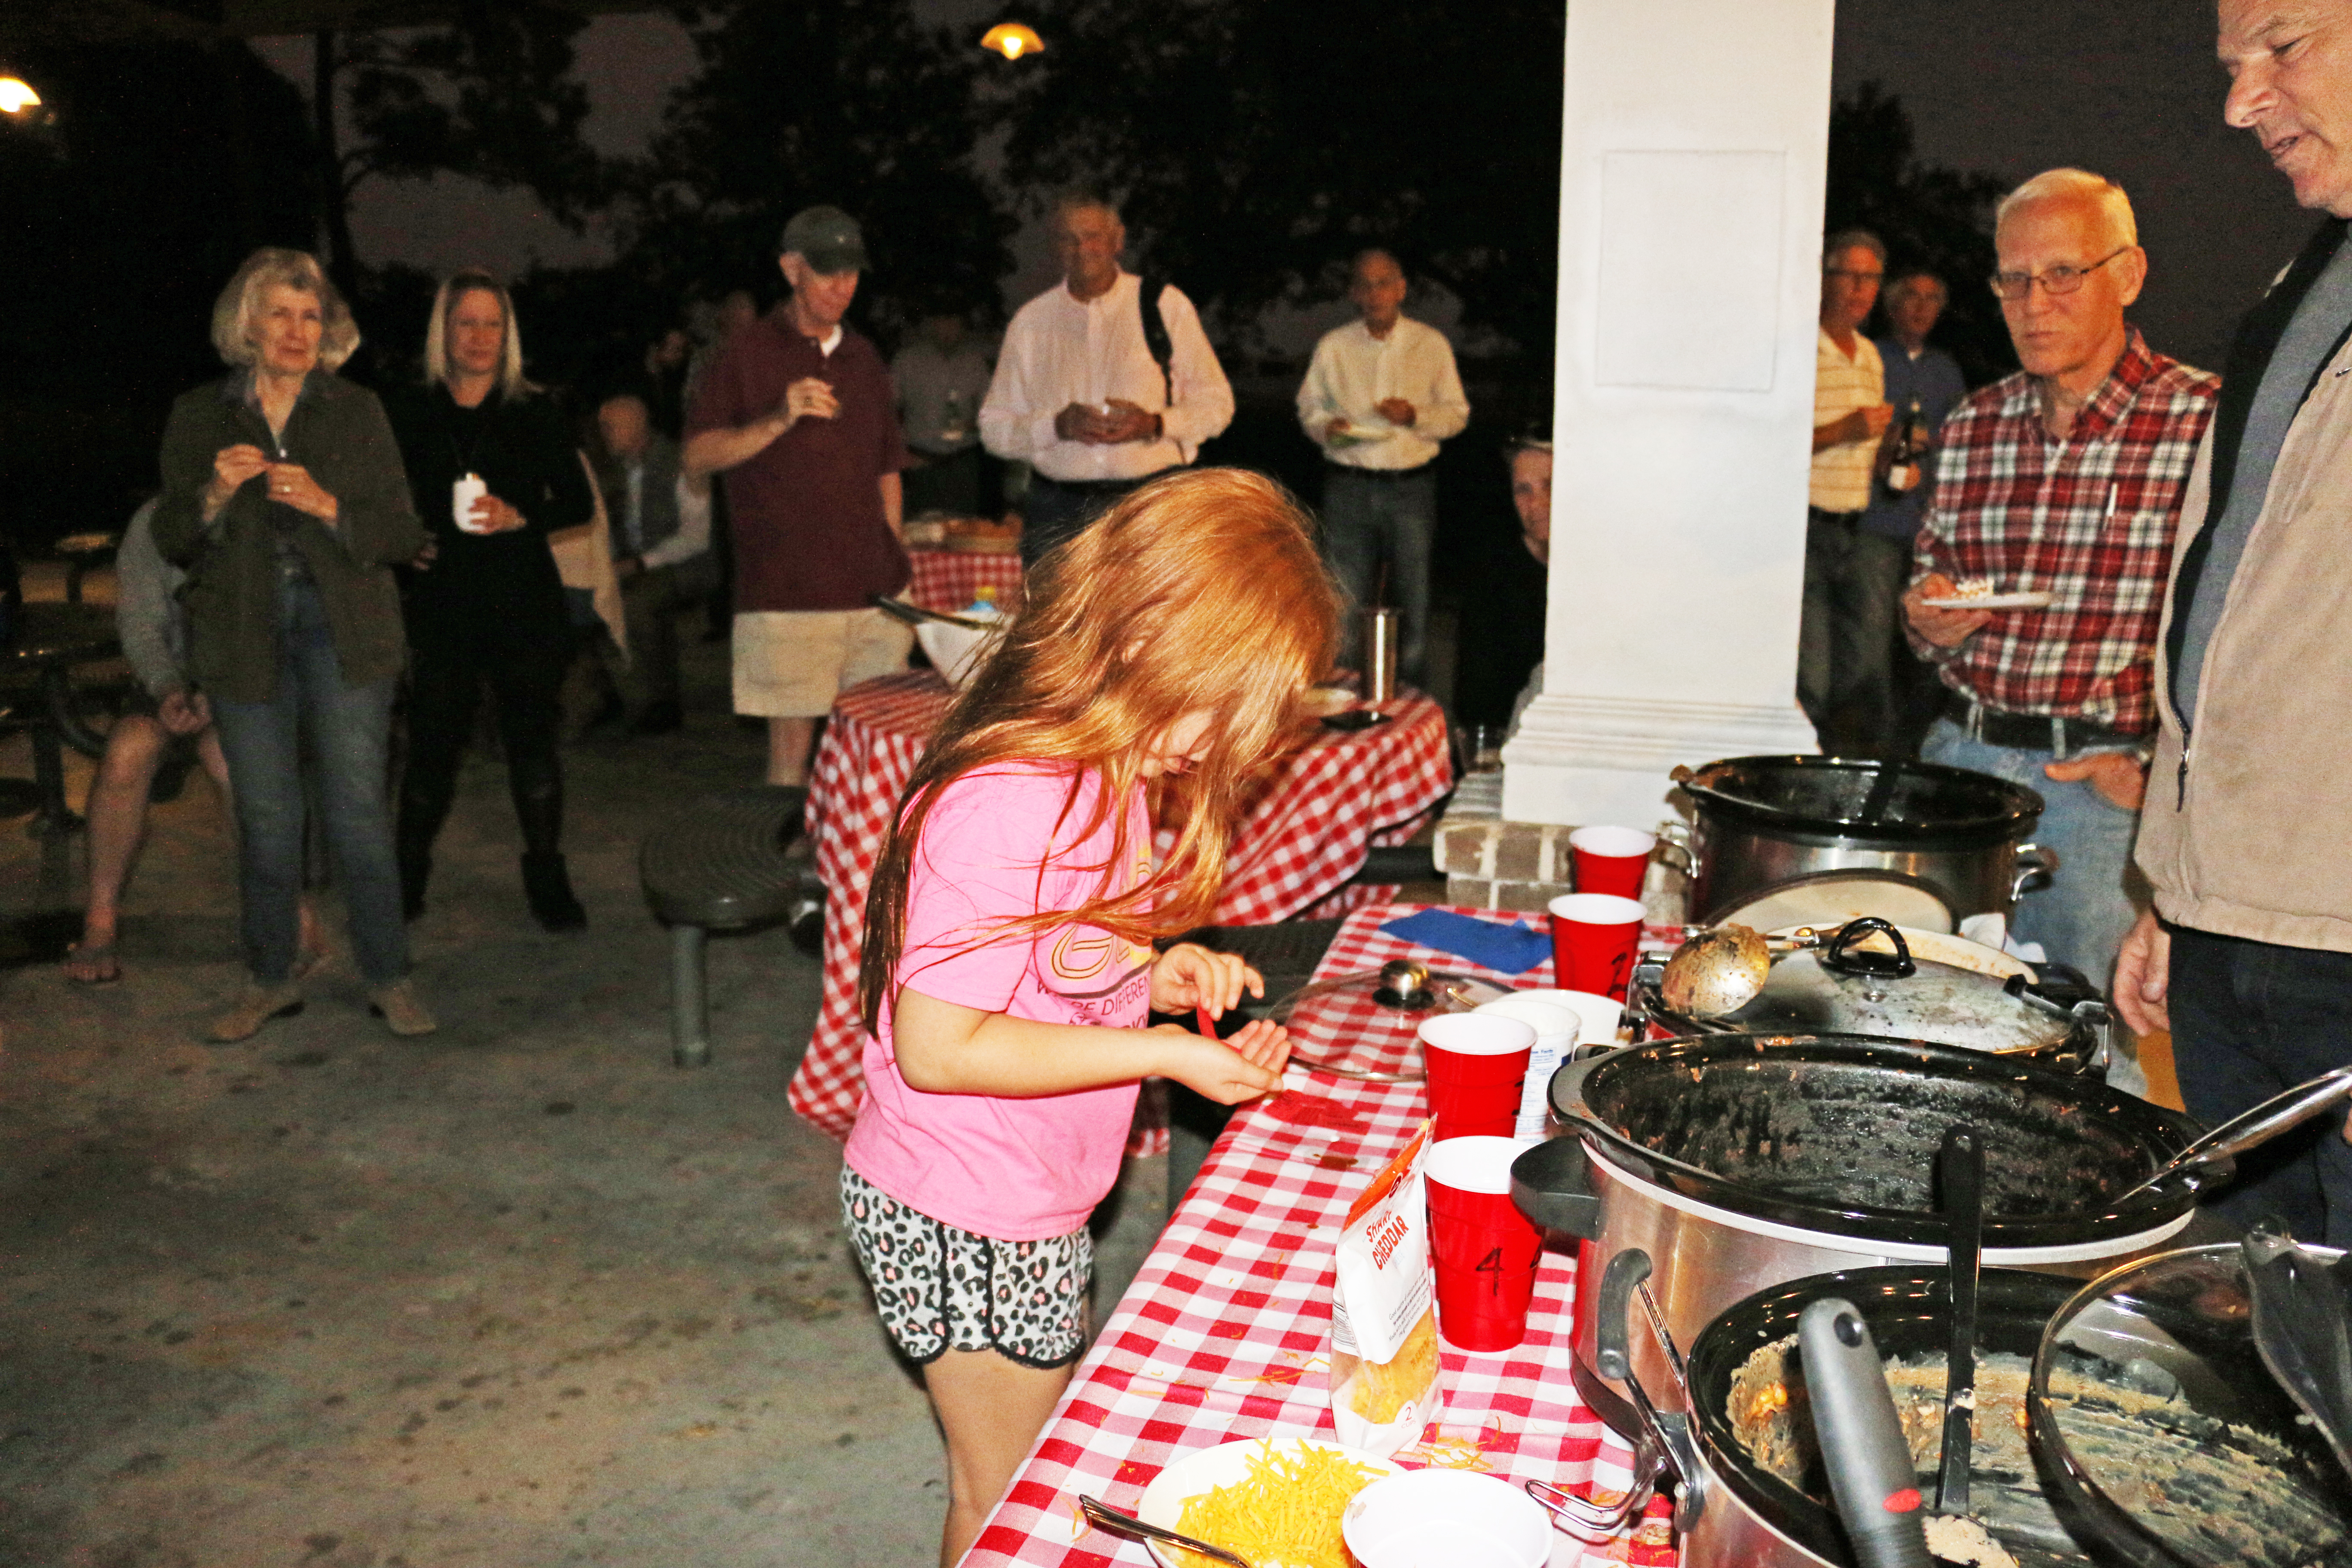 At the Daniel Island Rotary Club's Chili Cook-Off, Caroline O'Connor counted each vote to determine which Rotarian made the best chili. The second annual event was held Wednesday, Oct. 23, at Pierce Park Pavillion.